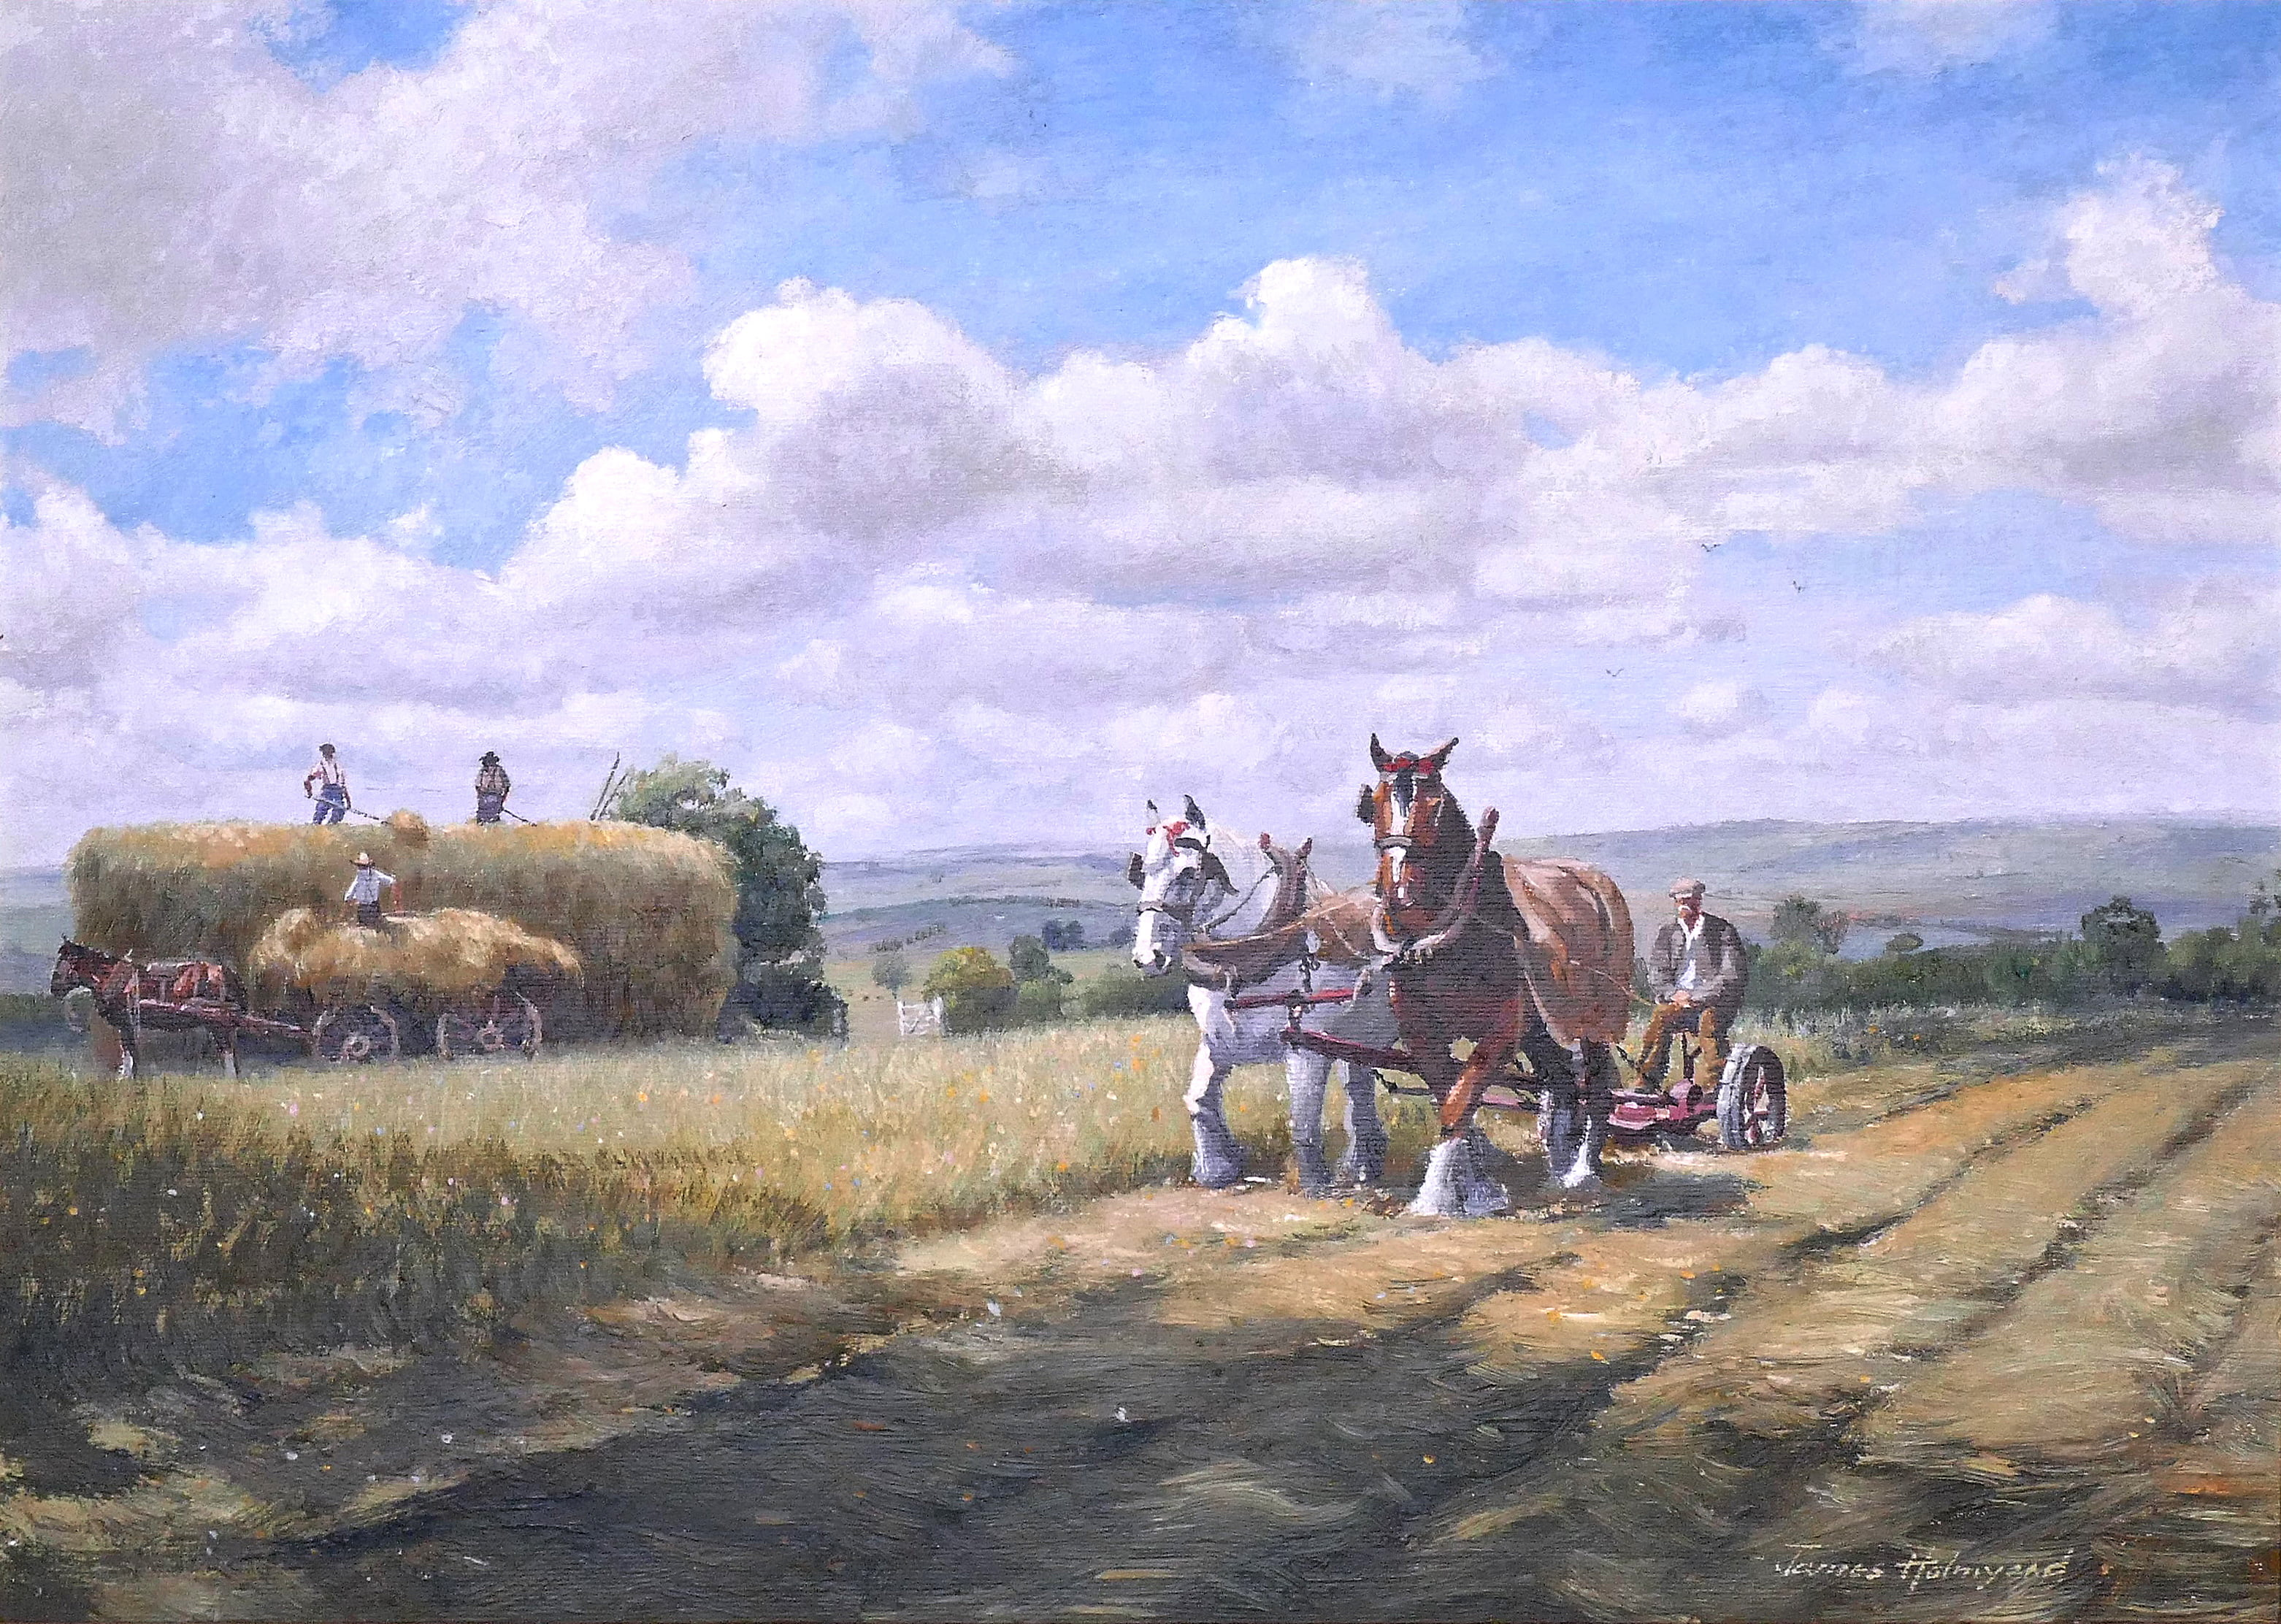 16. Ploughing and Harvesting